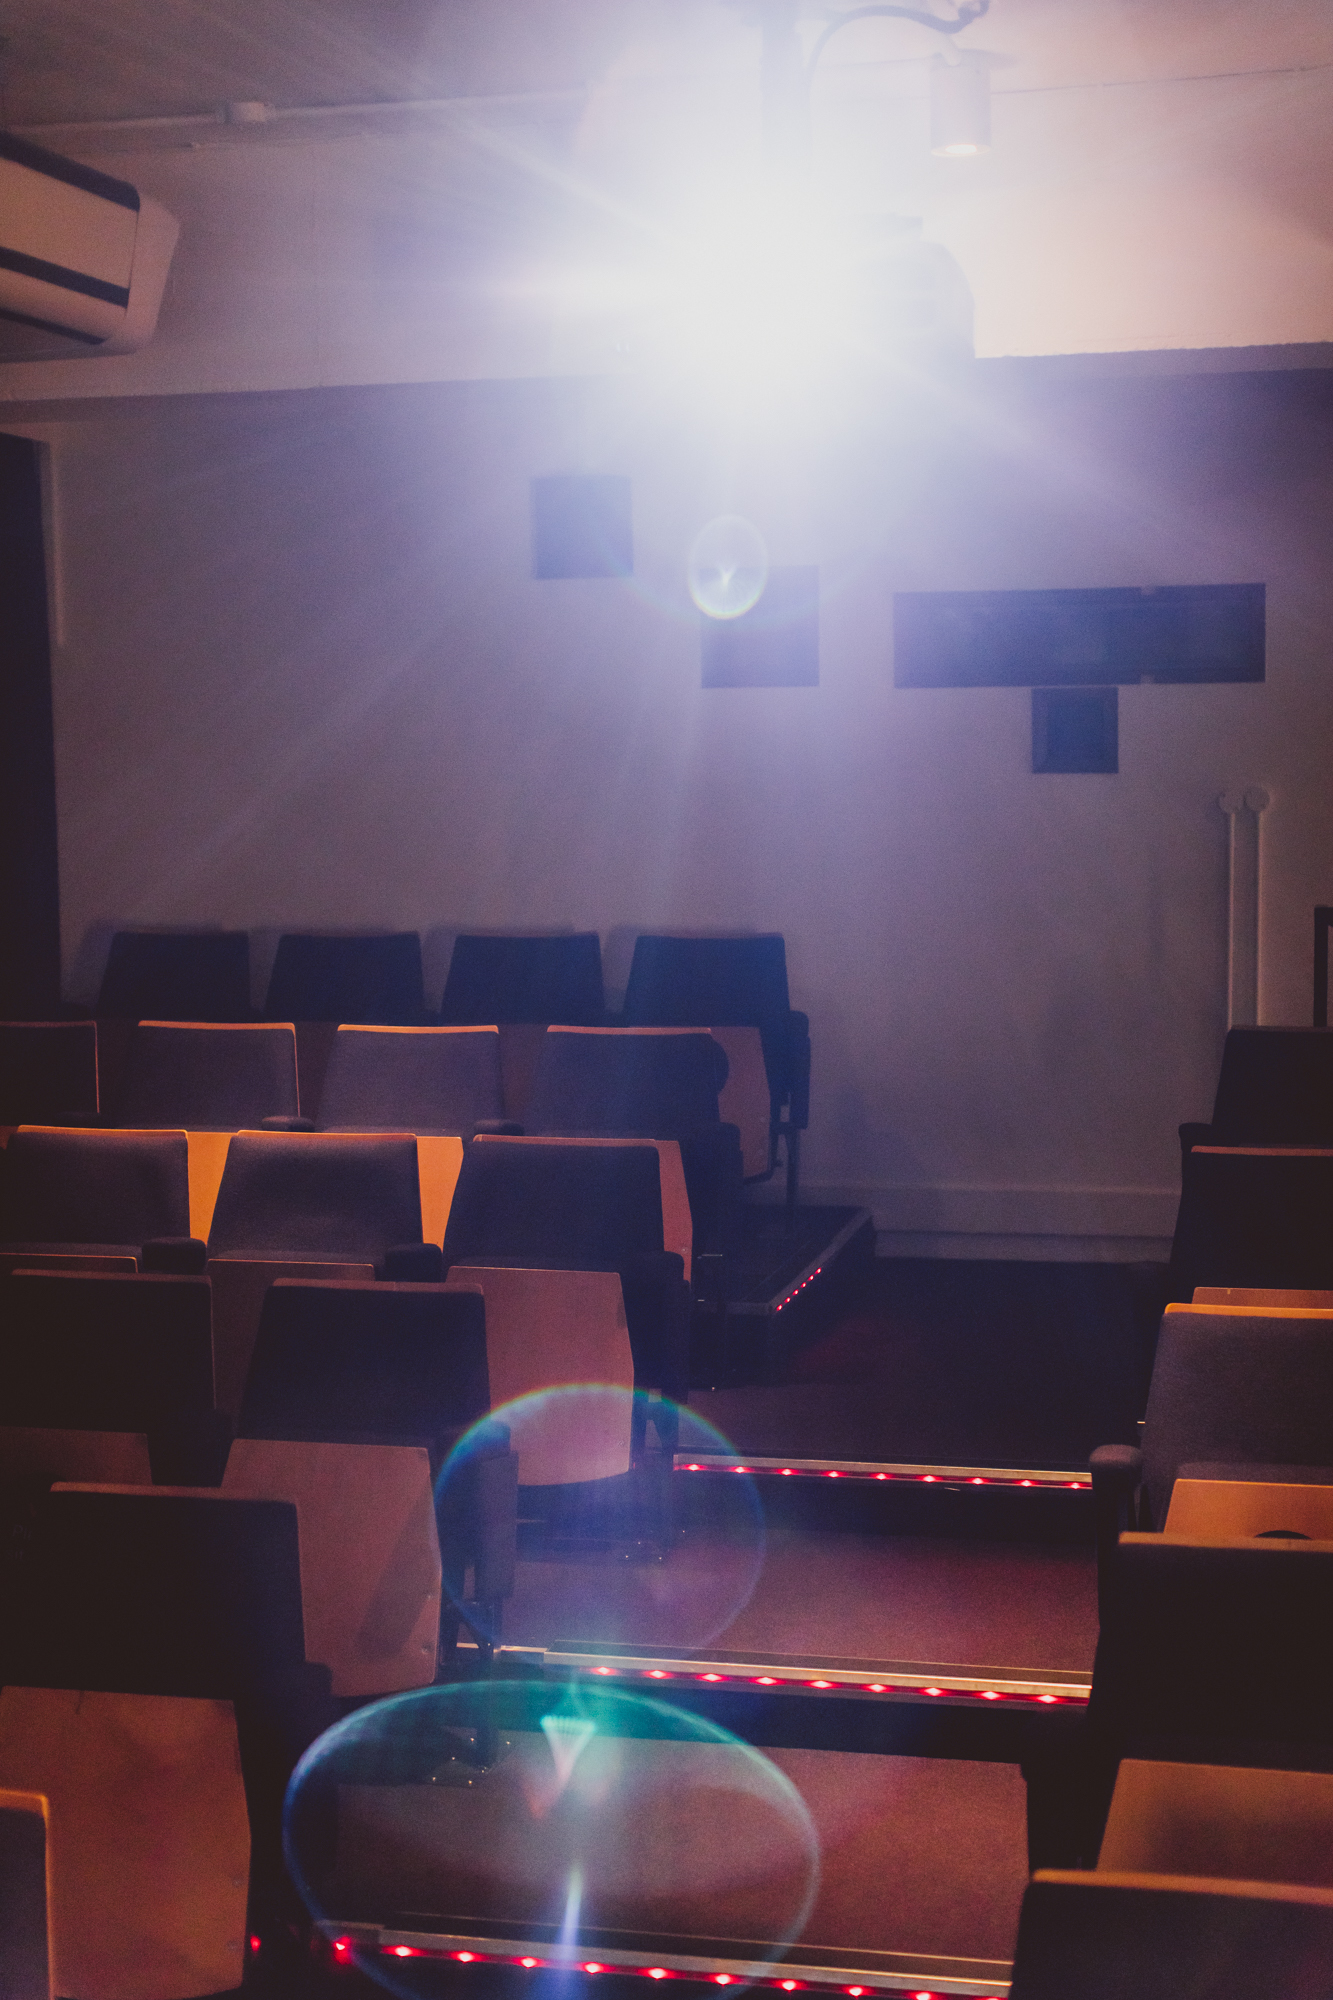 Seats and projector light in screening room